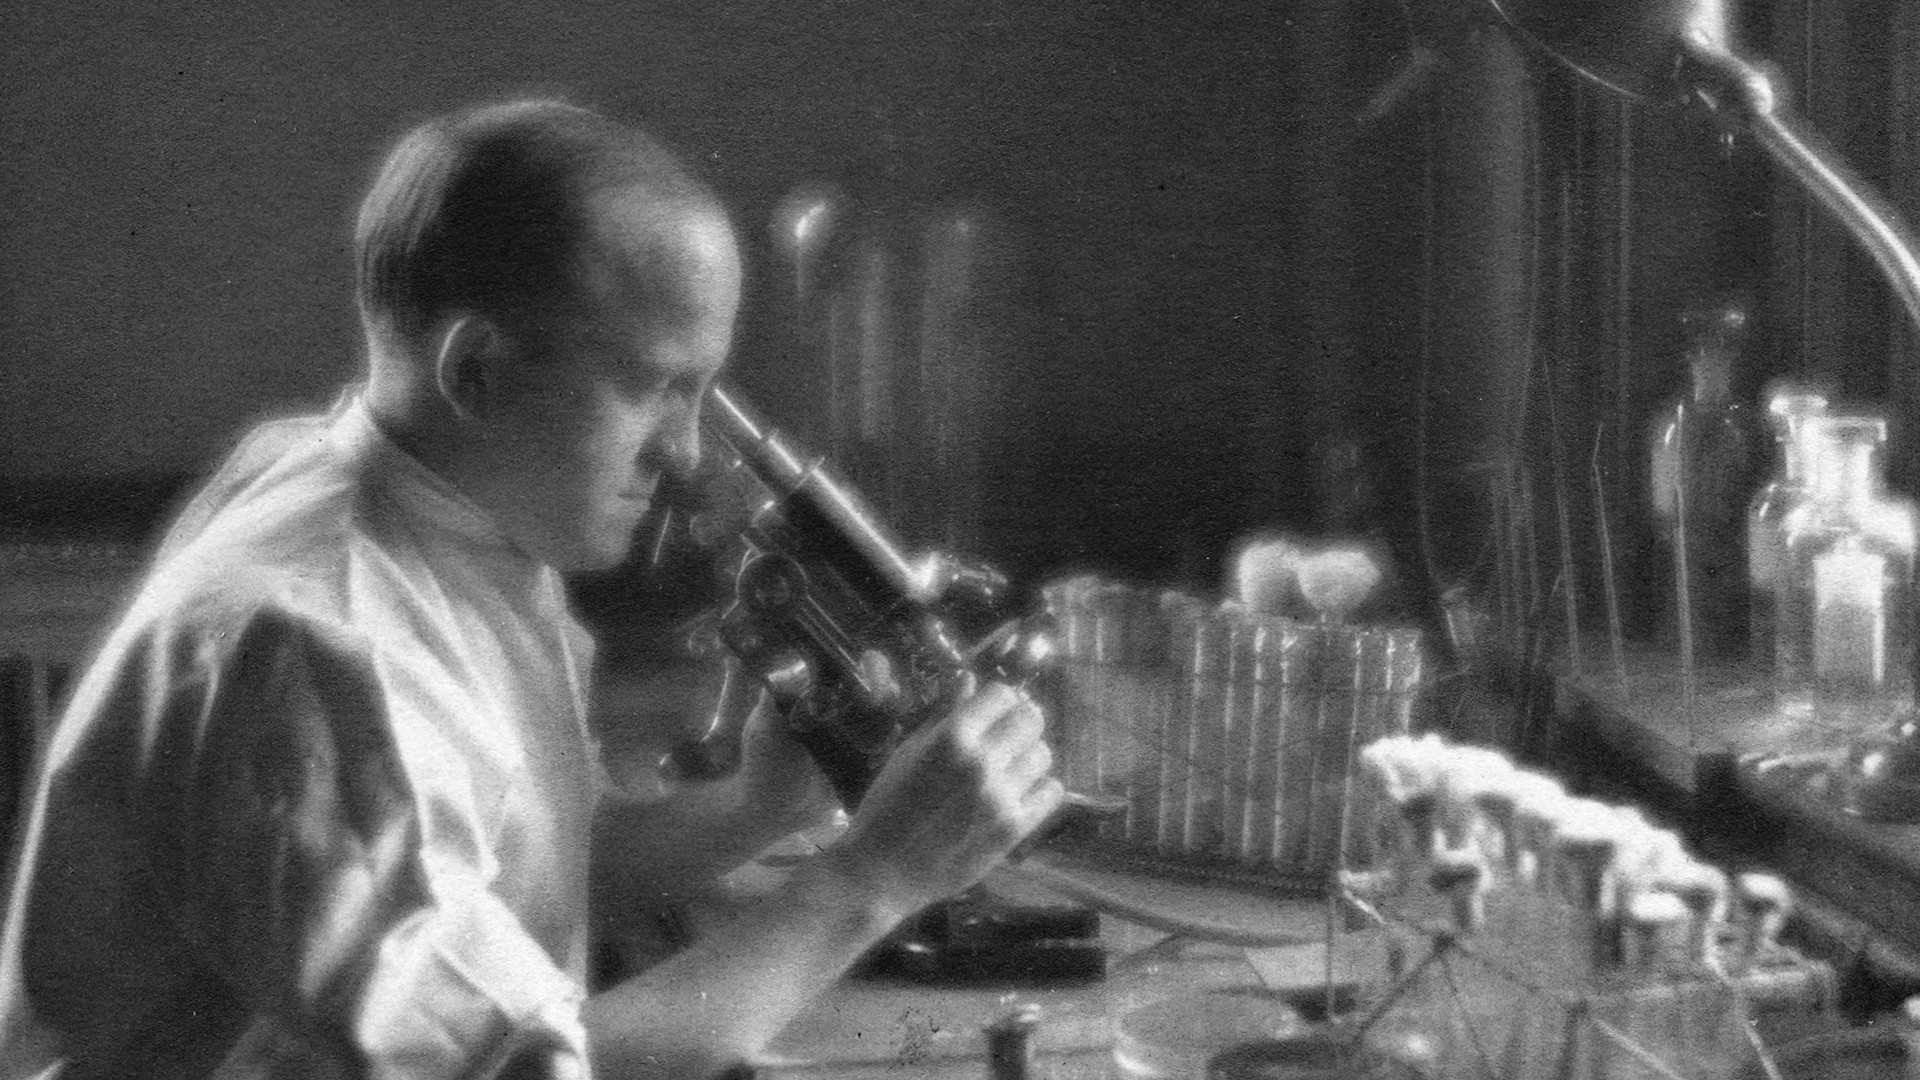 Oswald Avery, sciencing the shit out of stuff